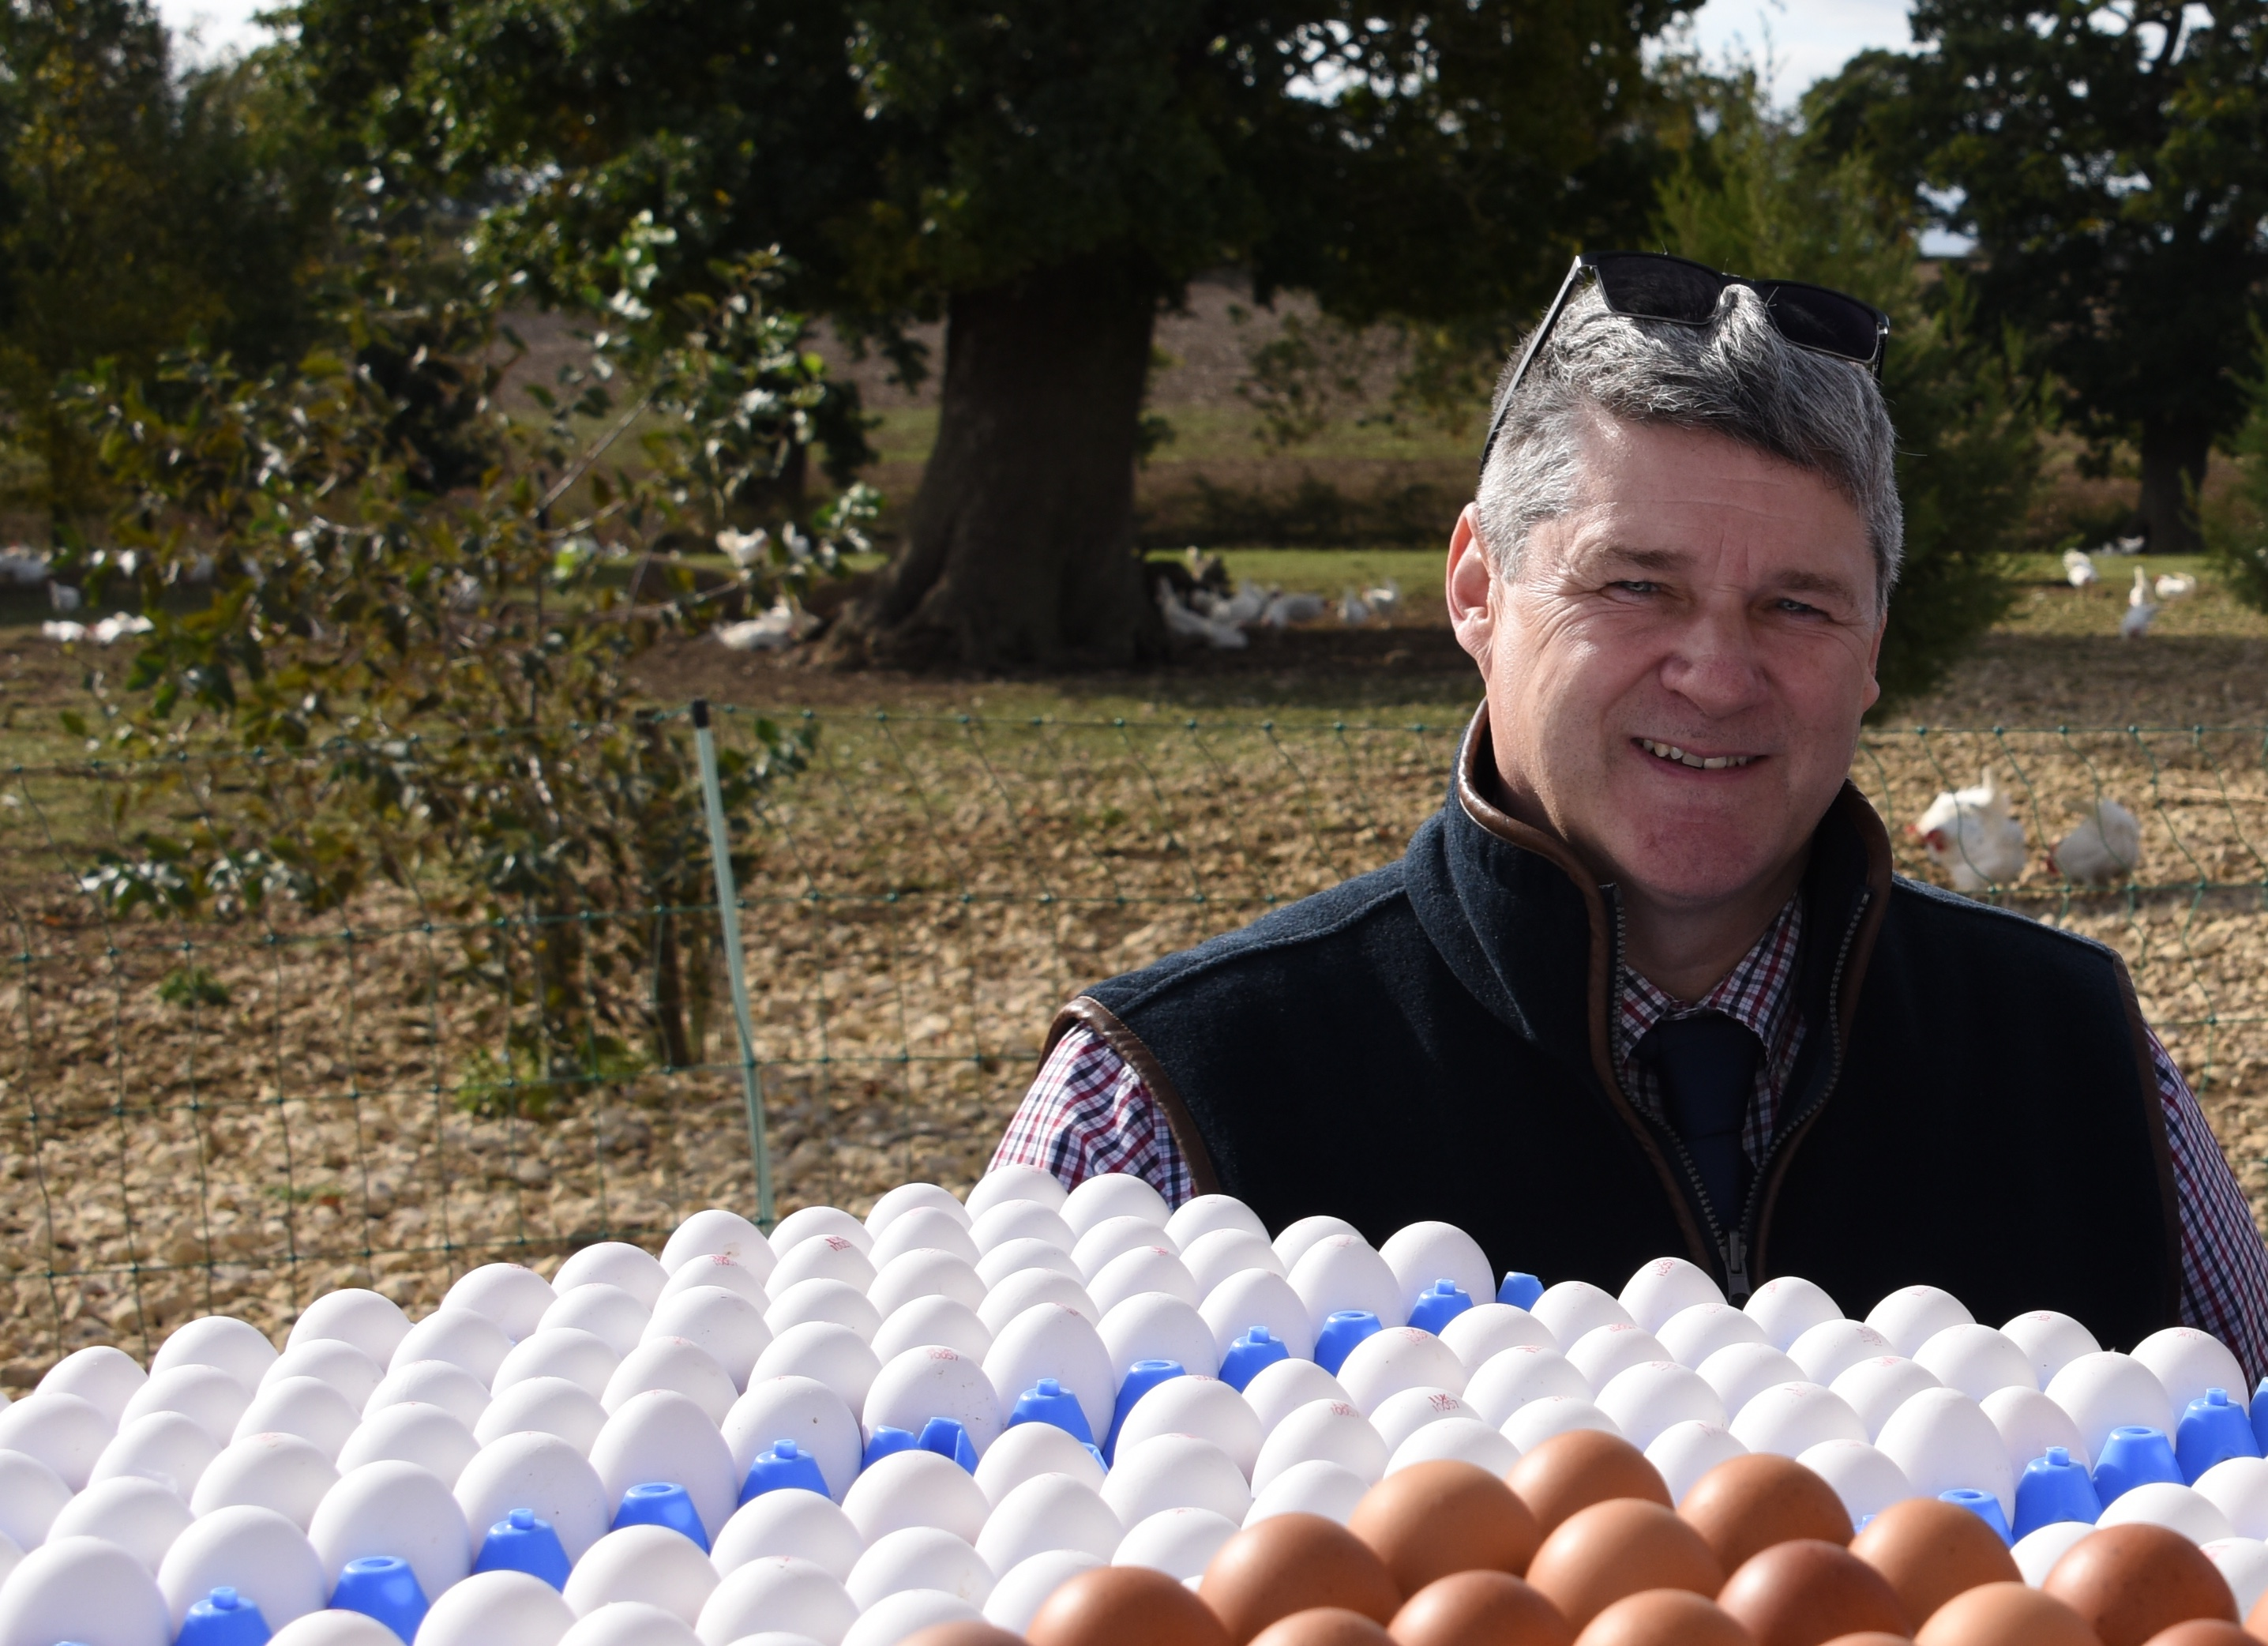 A change in buying habits would be better for hens and farmers.